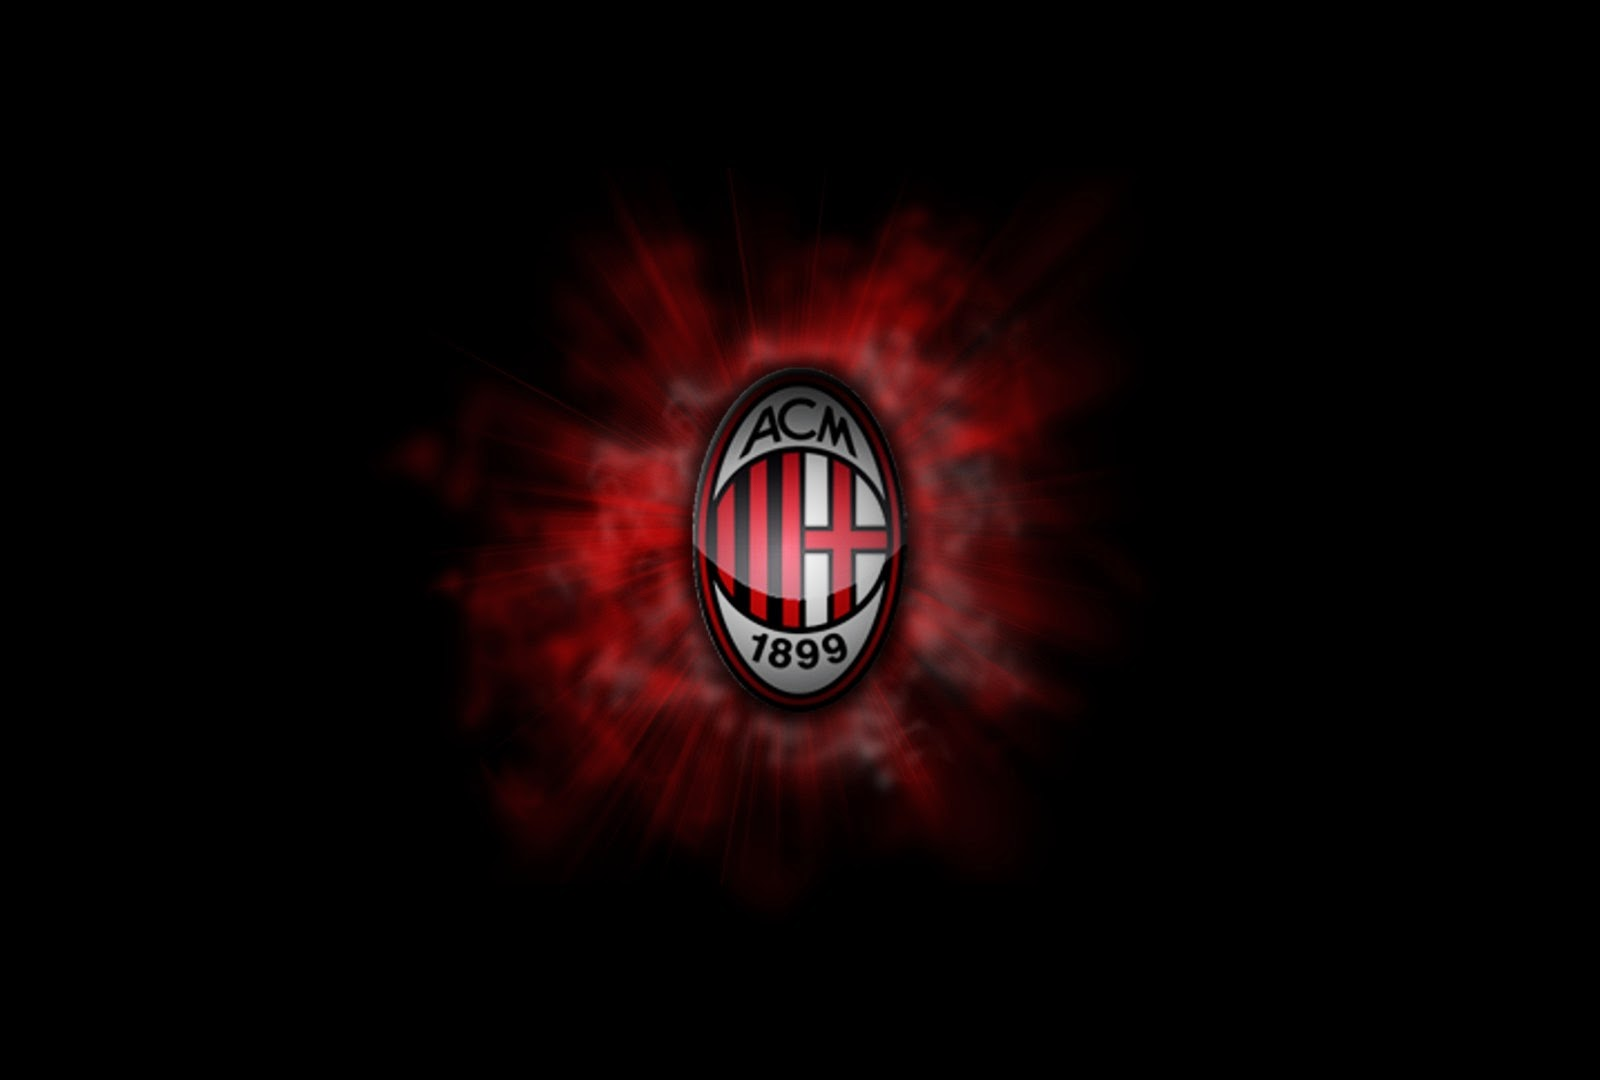 w ac milan it - photo#17